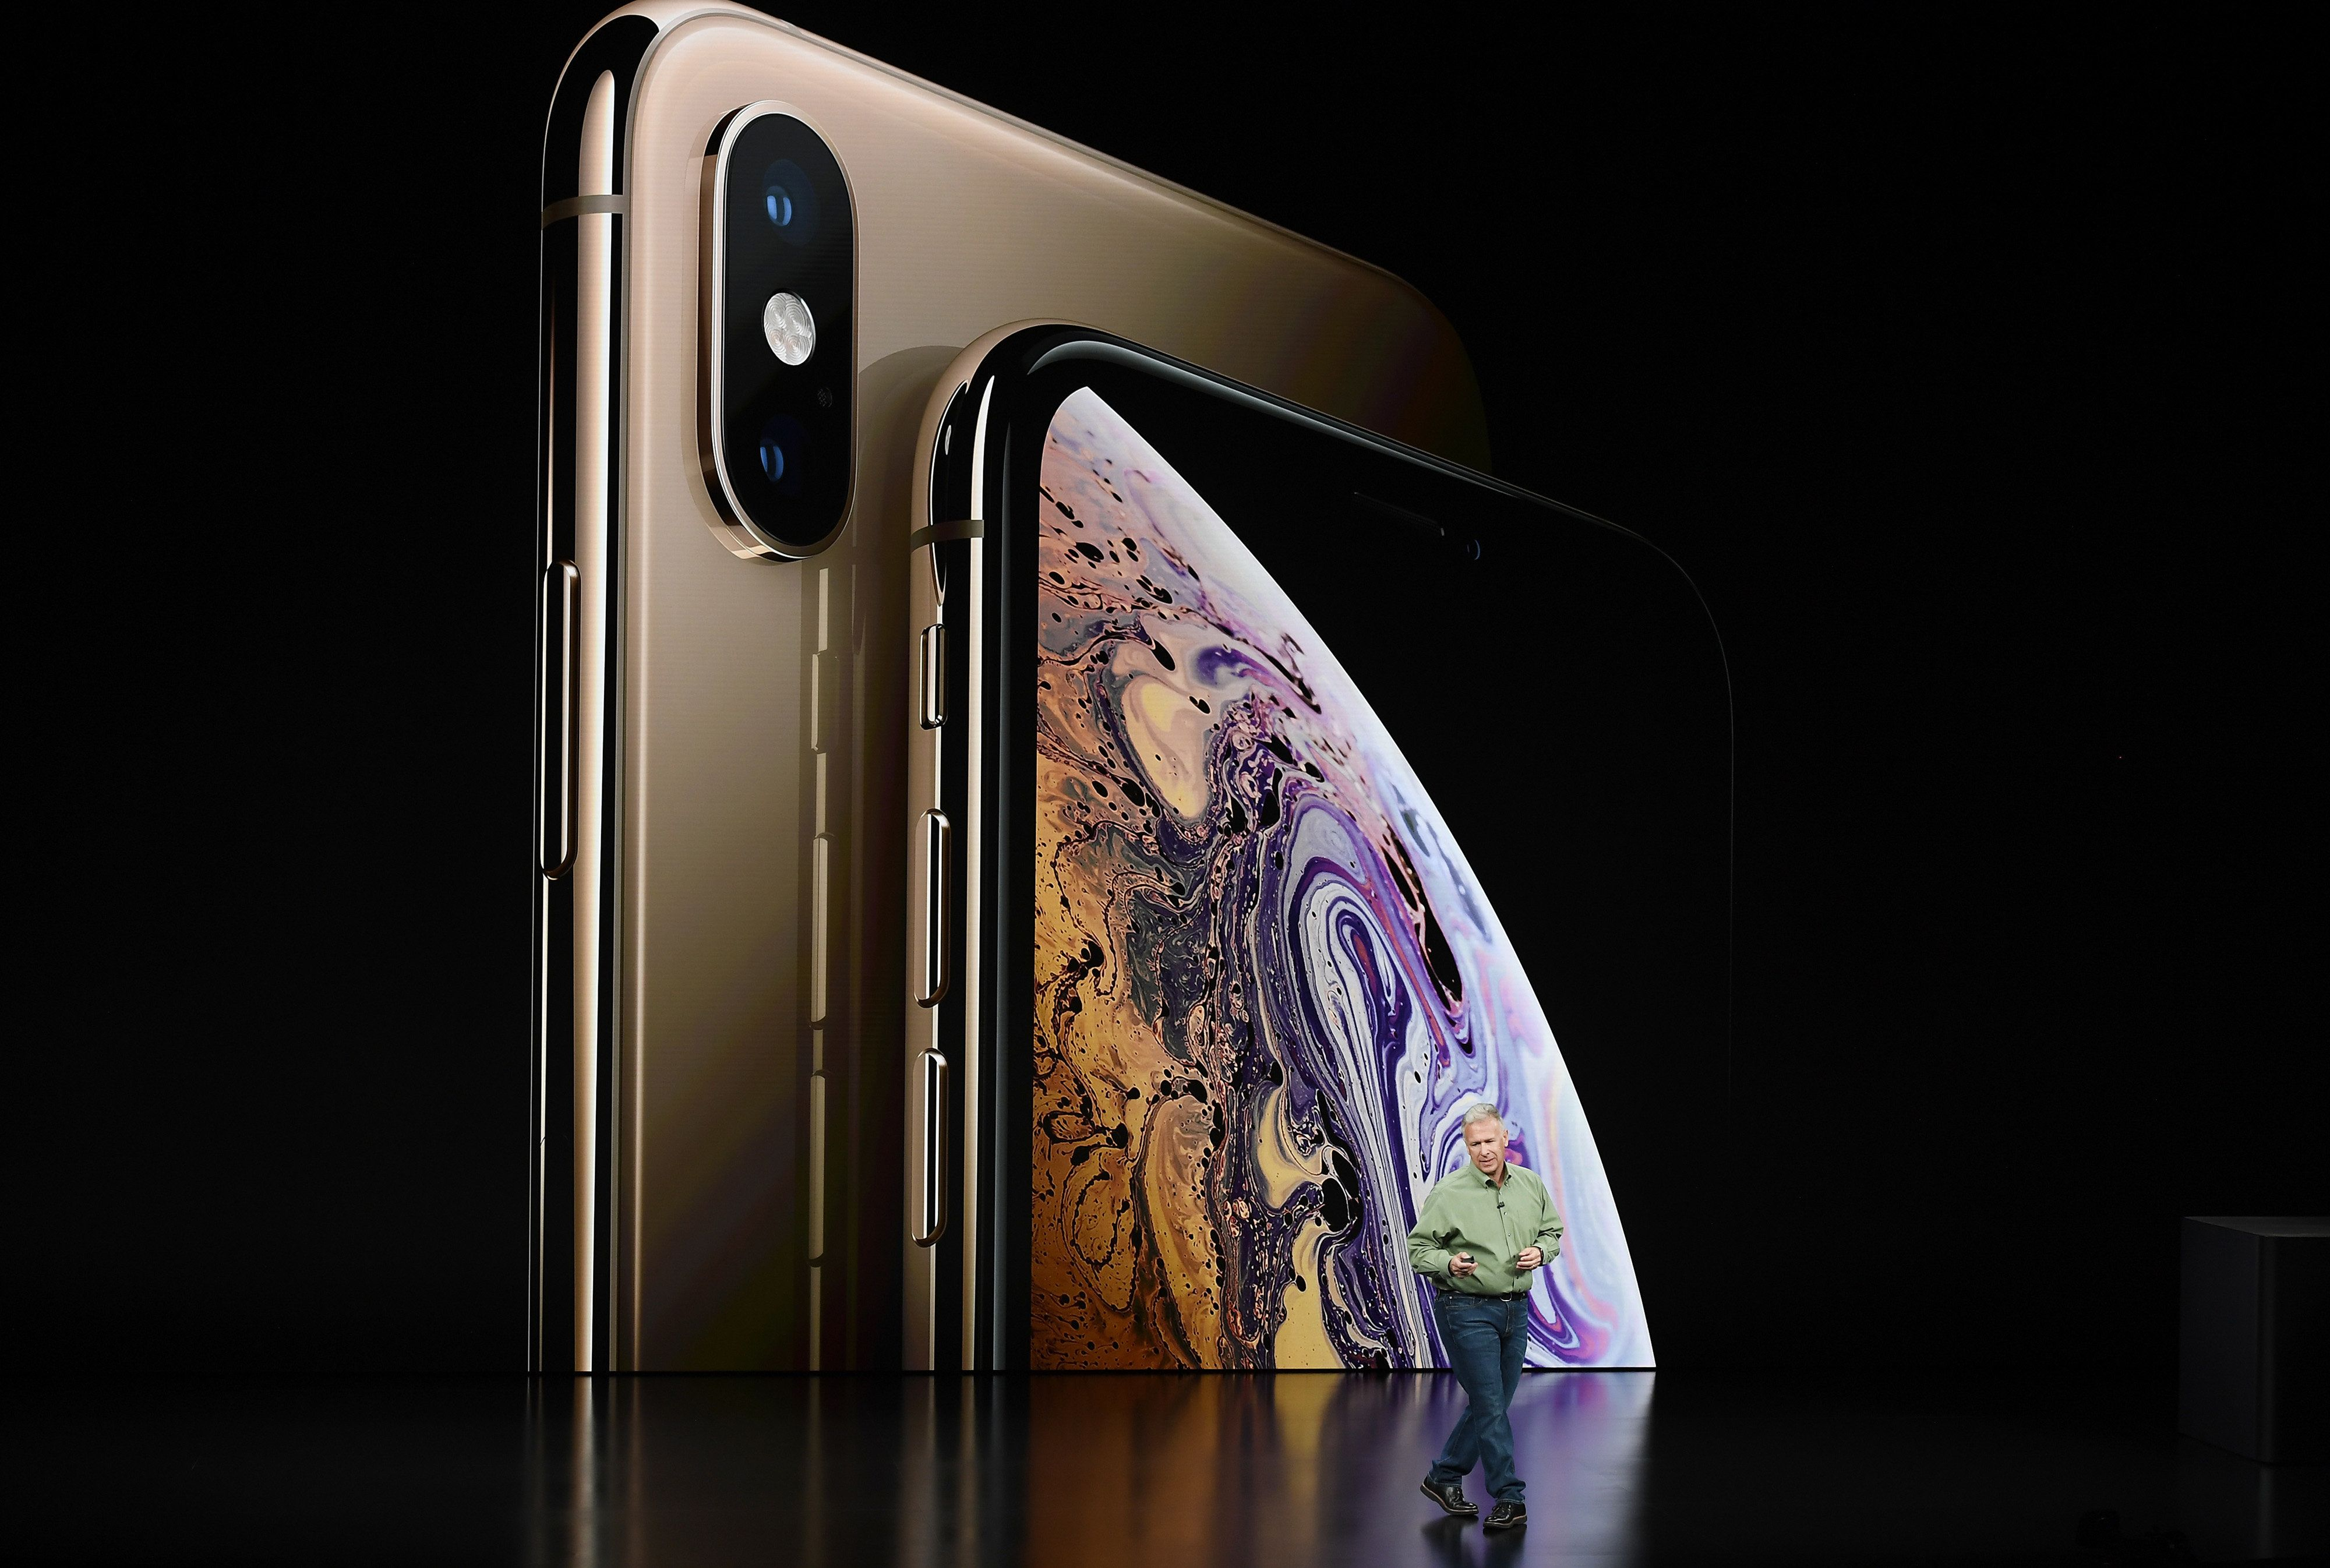 Apple launches the iPhone XS and iPhone XS Max